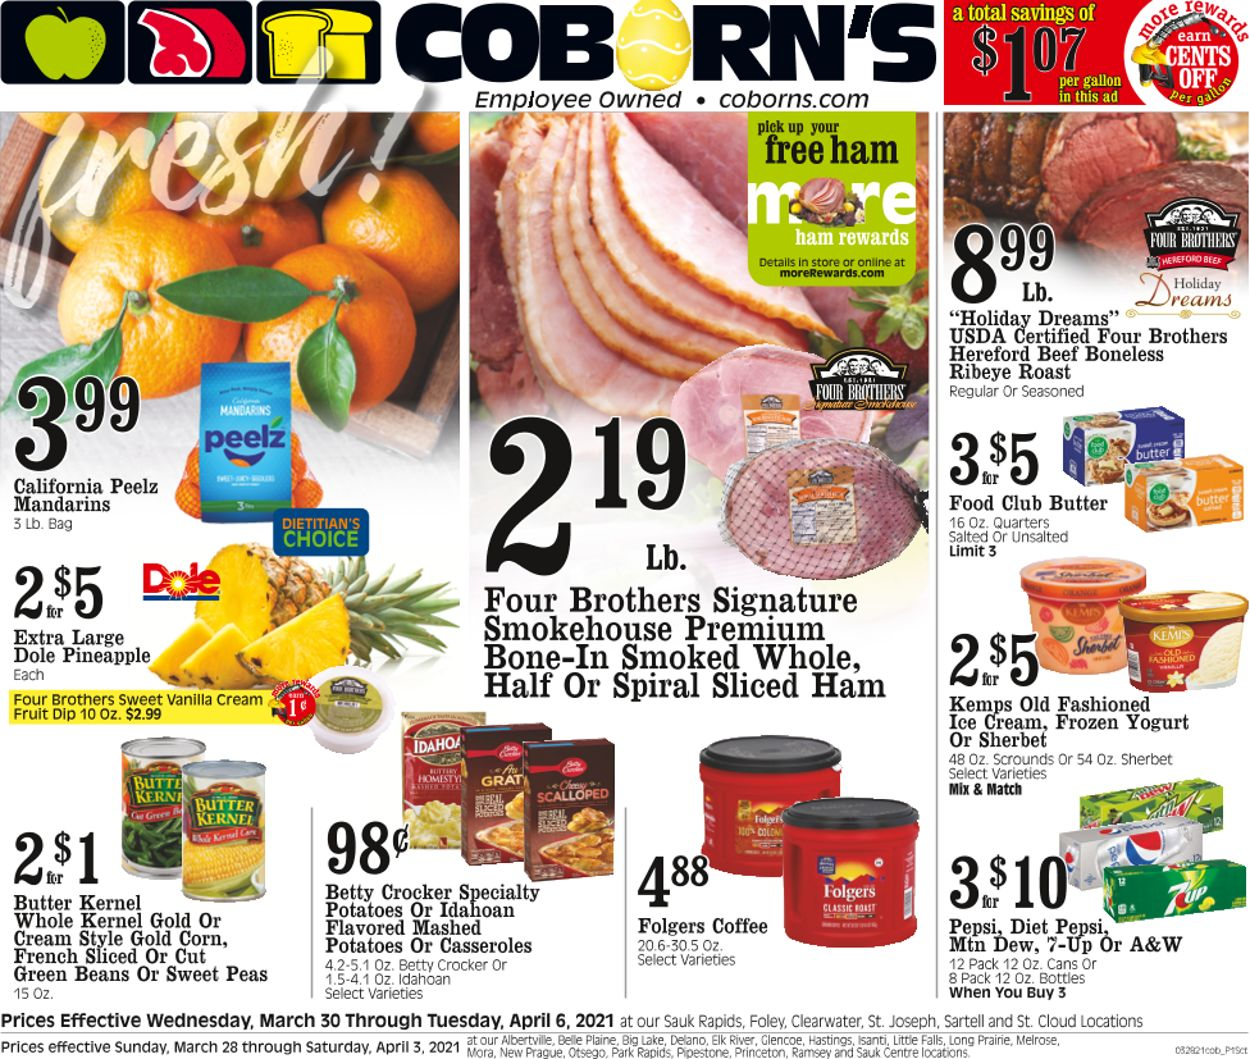 Coborn's Easter 2021 ad Weekly Ad Circular - valid 03/30-04/06/2021